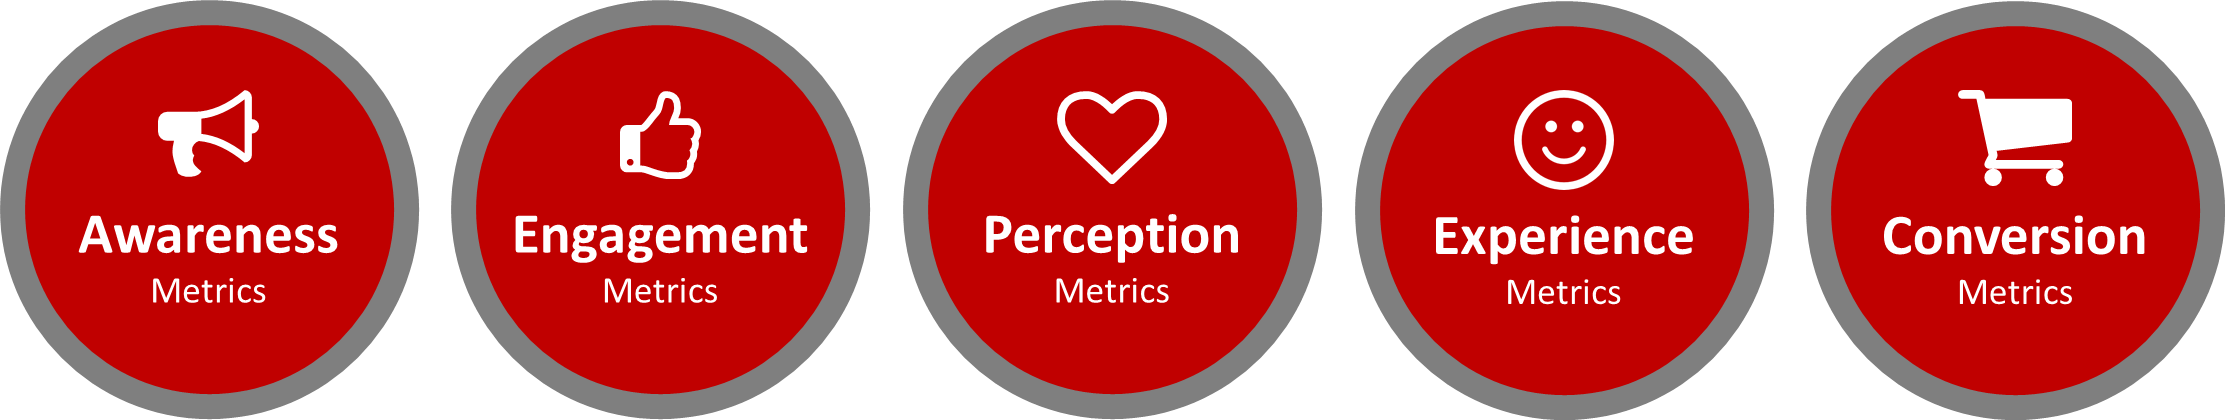 Types of Marketing Metrics